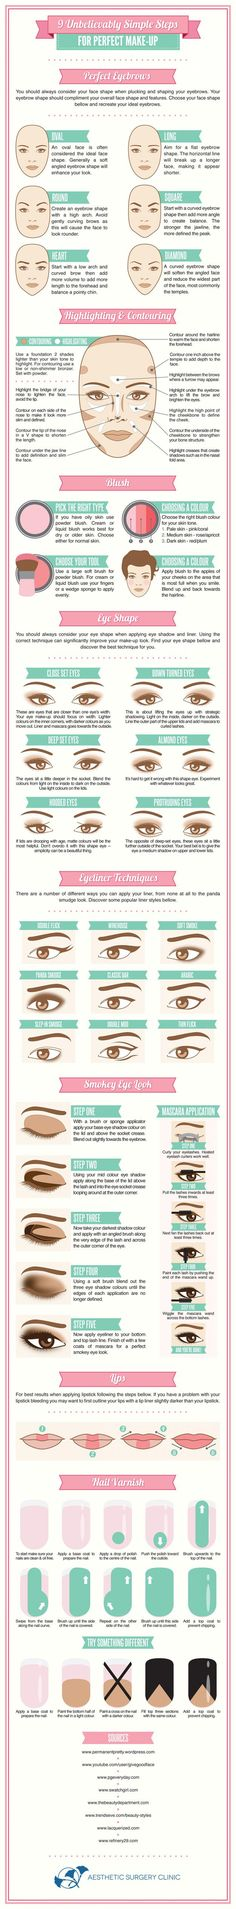 9-unbelievably-simple-steps-to-perfect-makeup.jpg (625×5058)